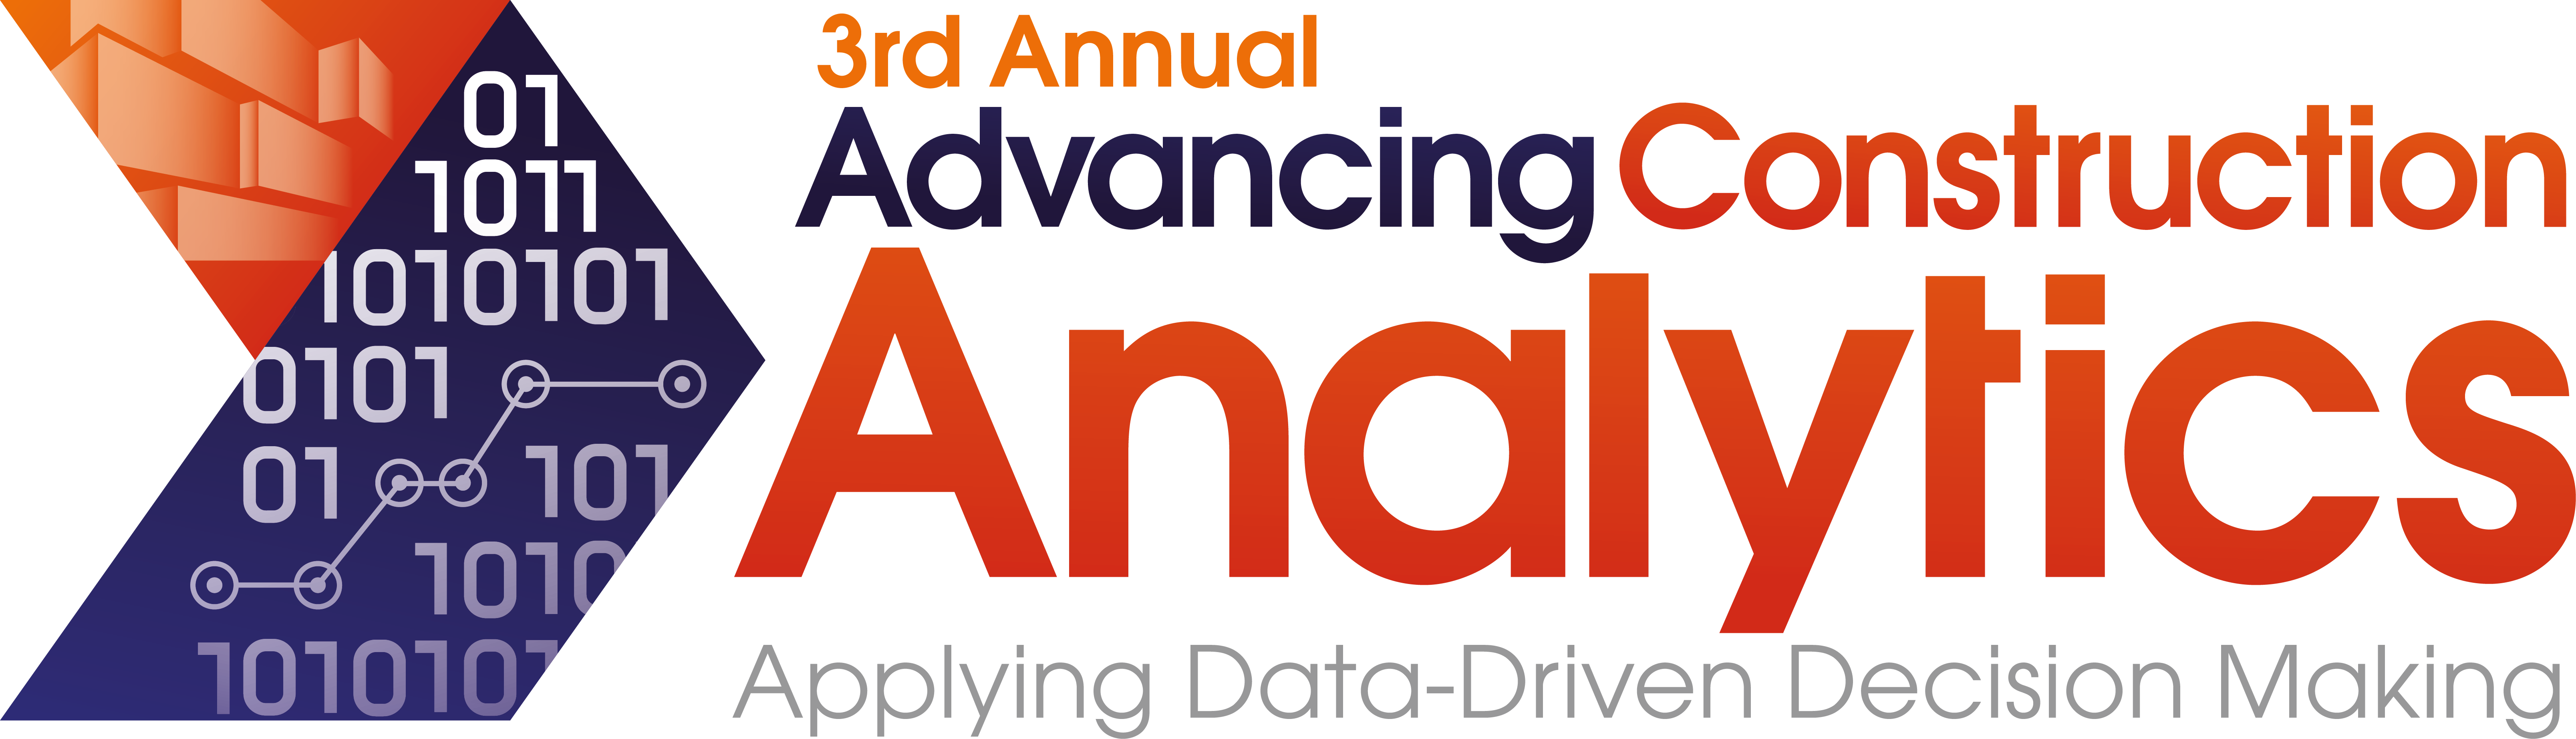 HW210222 Advancing Construction Analytics 2021 logo